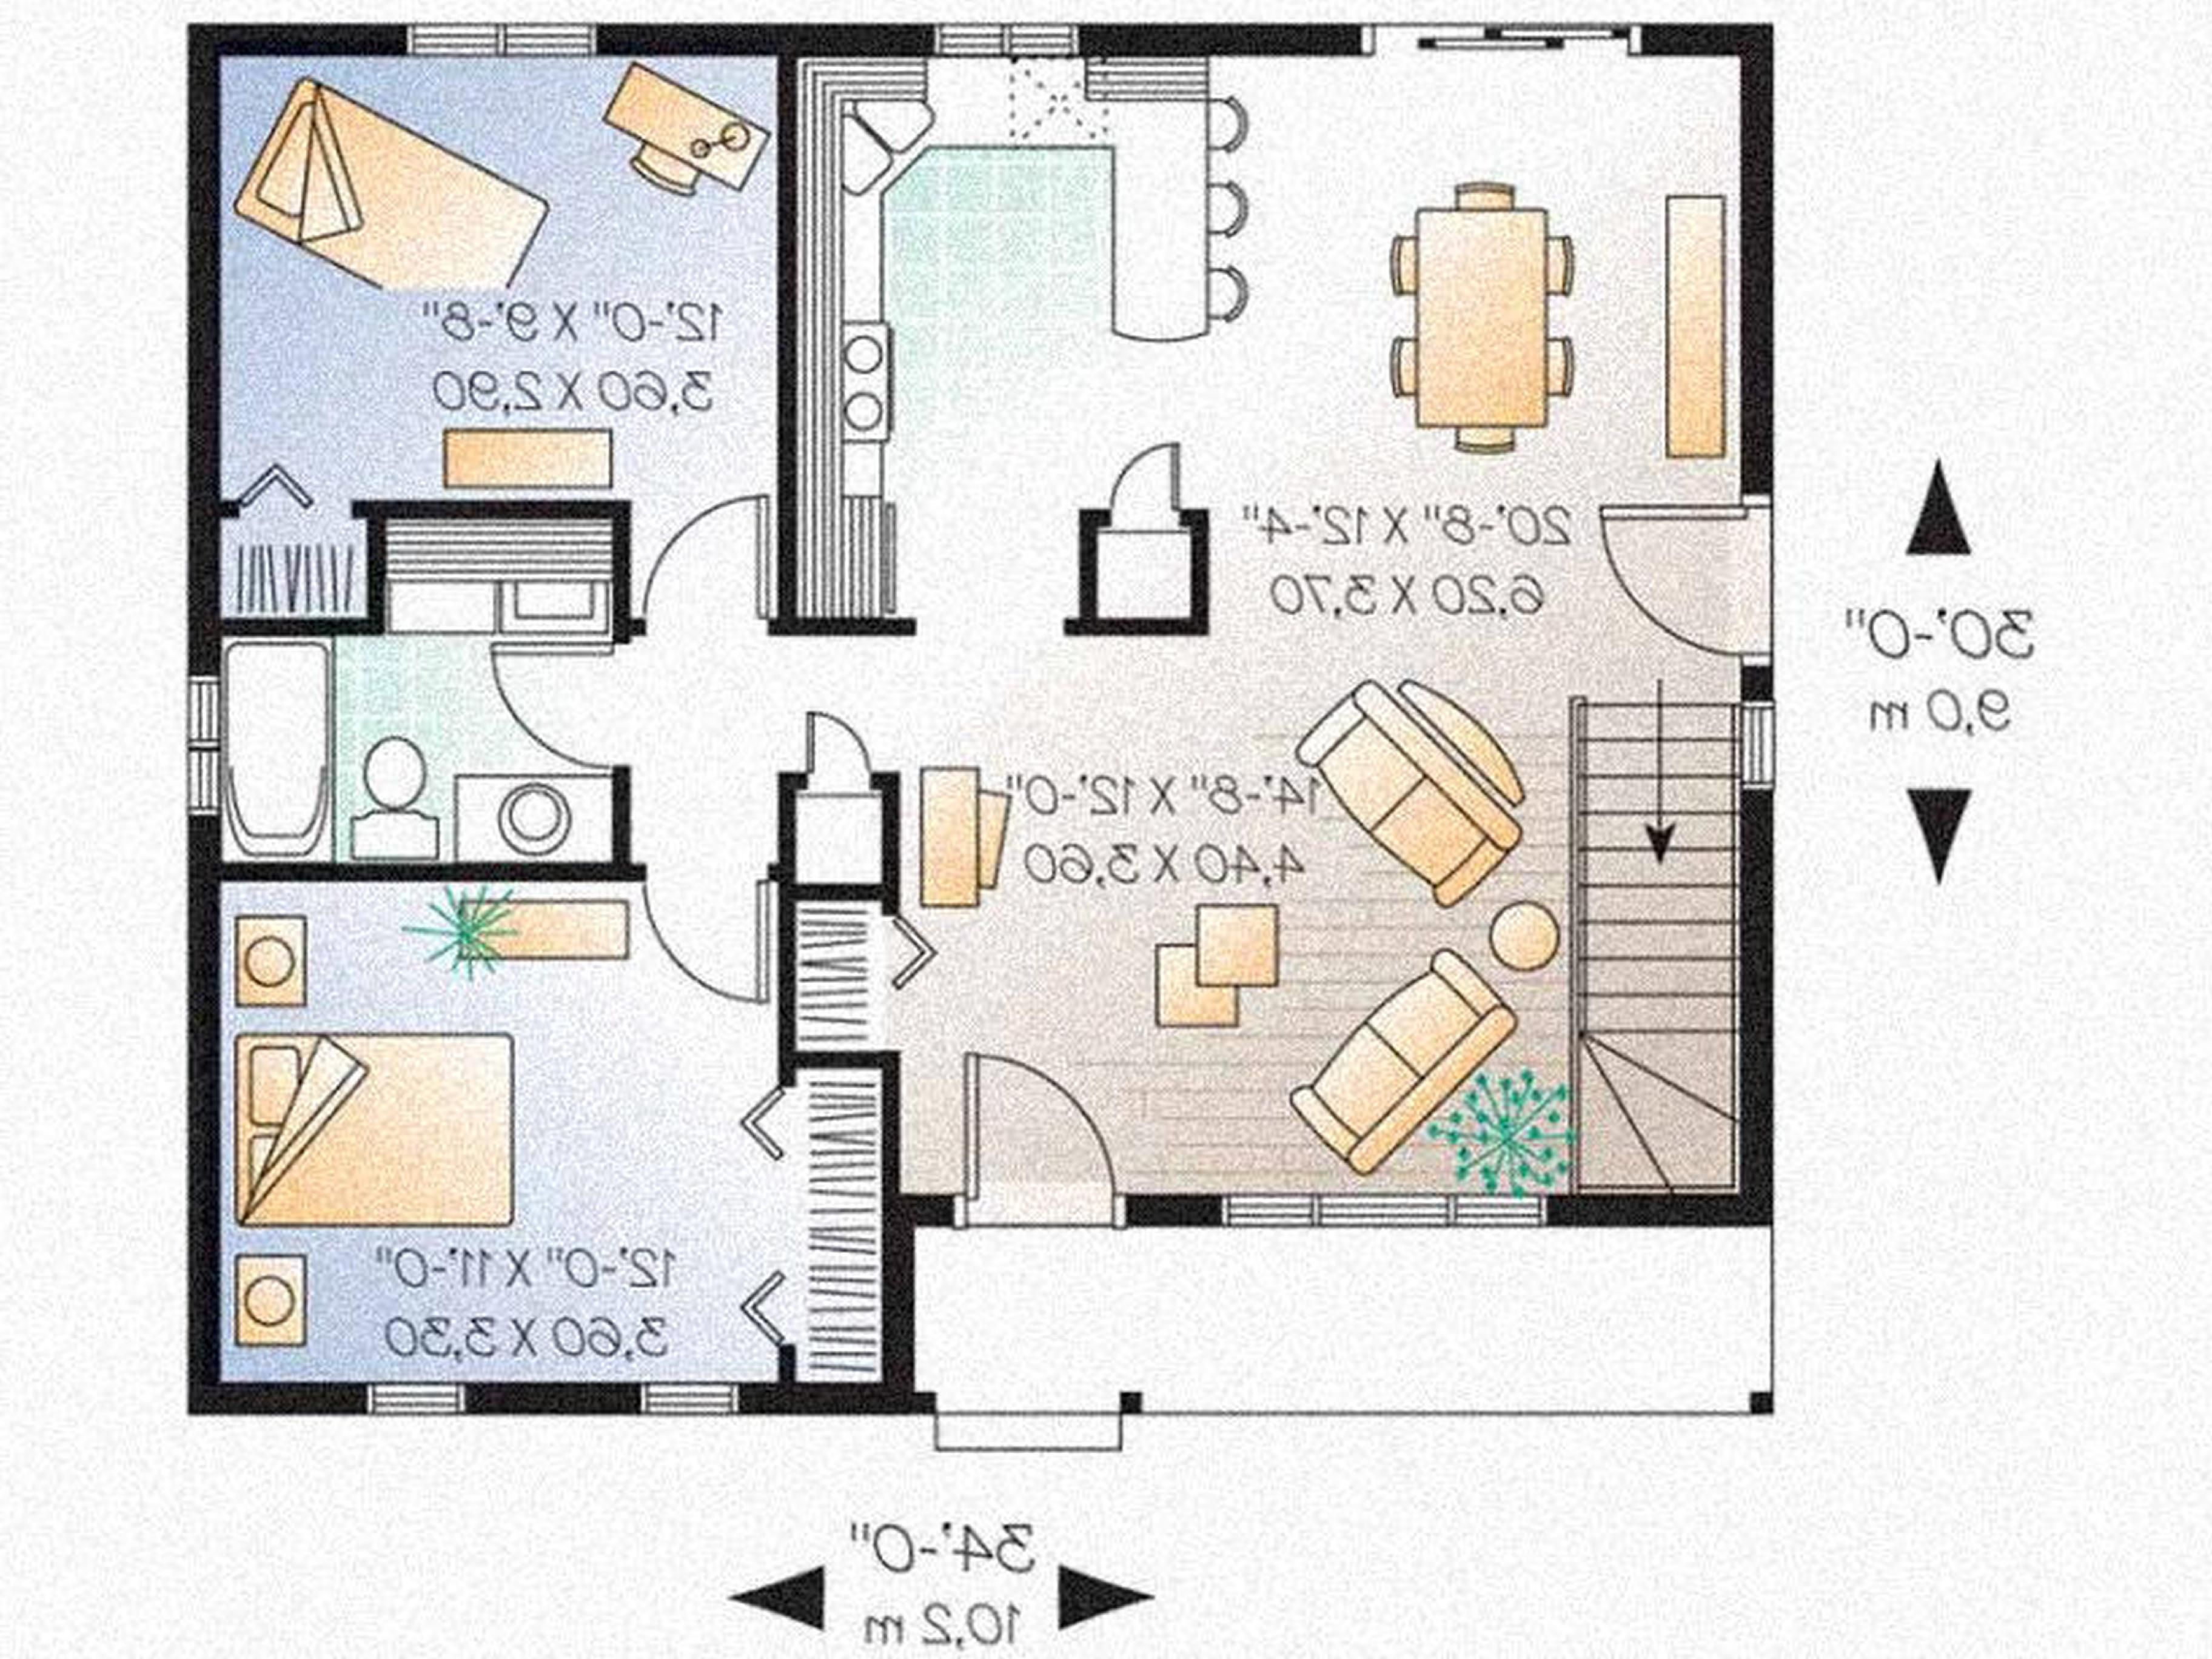 2 Bedroom House Plans With Garage Stairs Pinned By Www Modlar Com Floor Plan Design Bedroom House Plans One Floor House Plans